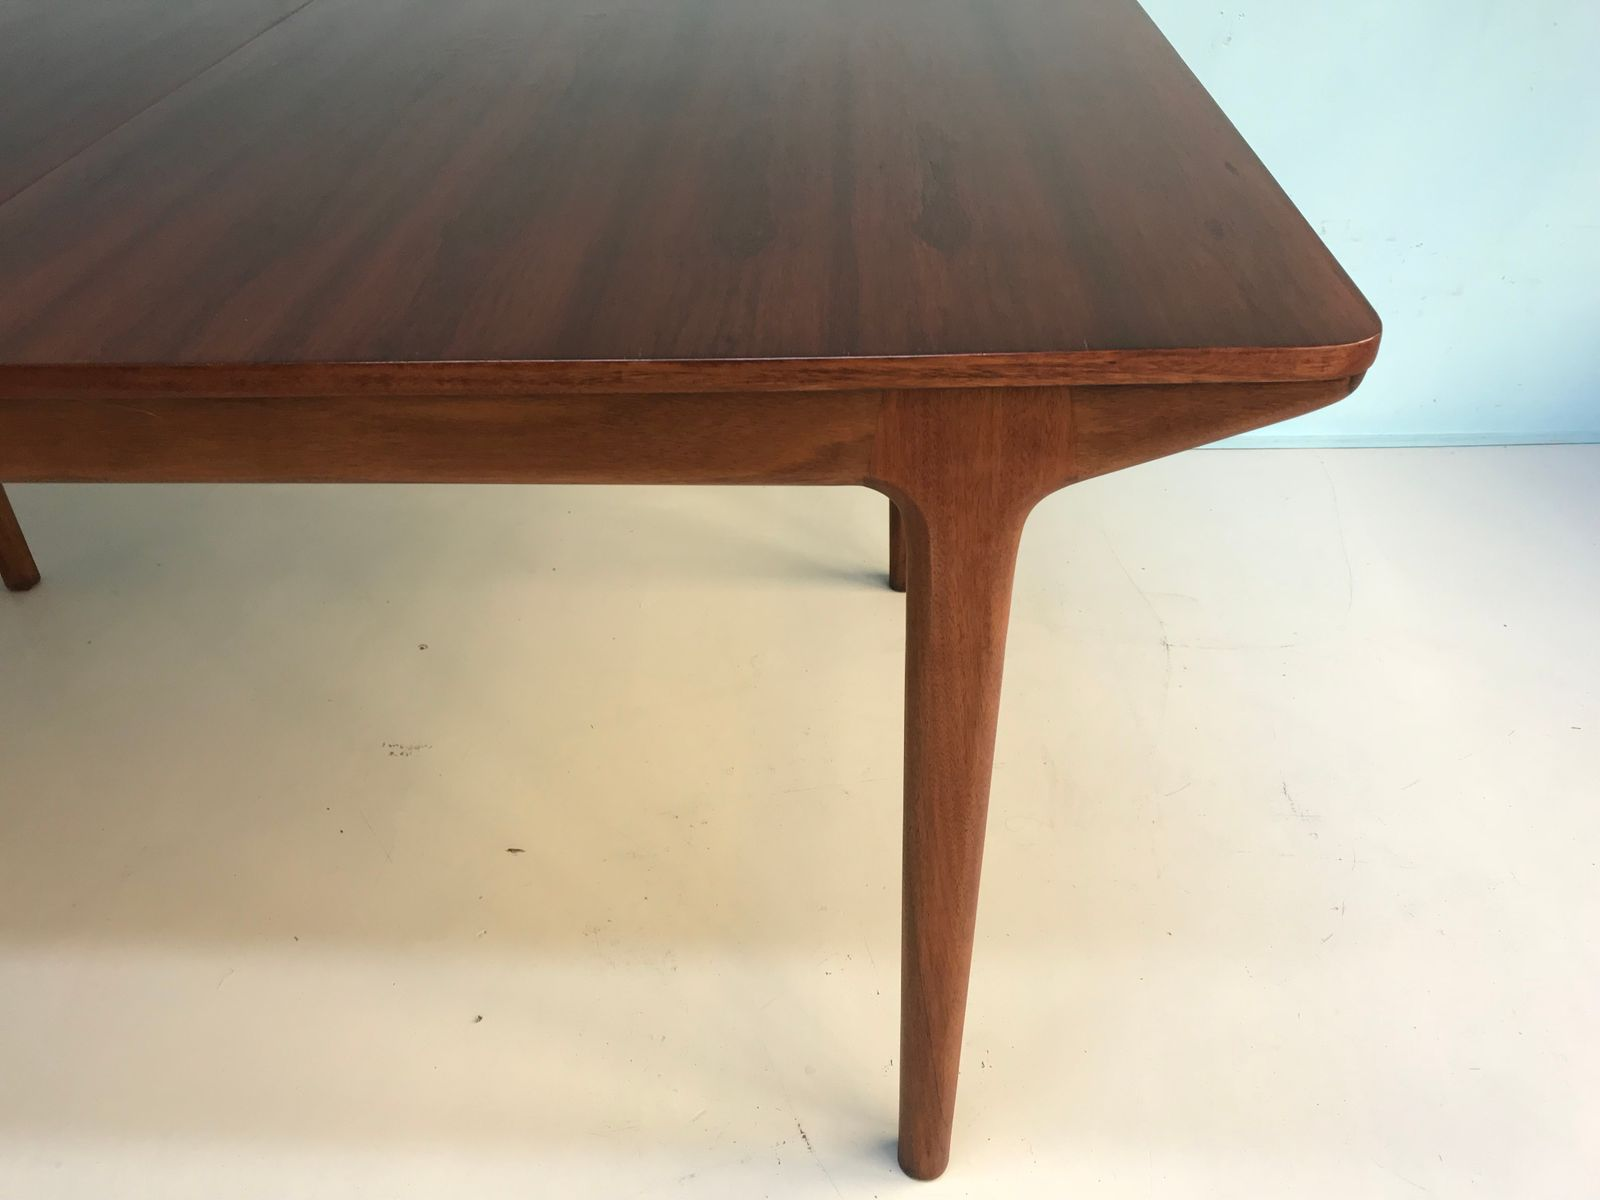 Mid Century Rosewood Dining Table from Mcintosh for sale  : mid century rosewood dining table from mcintosh 2 from www.pamono.com size 1600 x 1200 jpeg 61kB